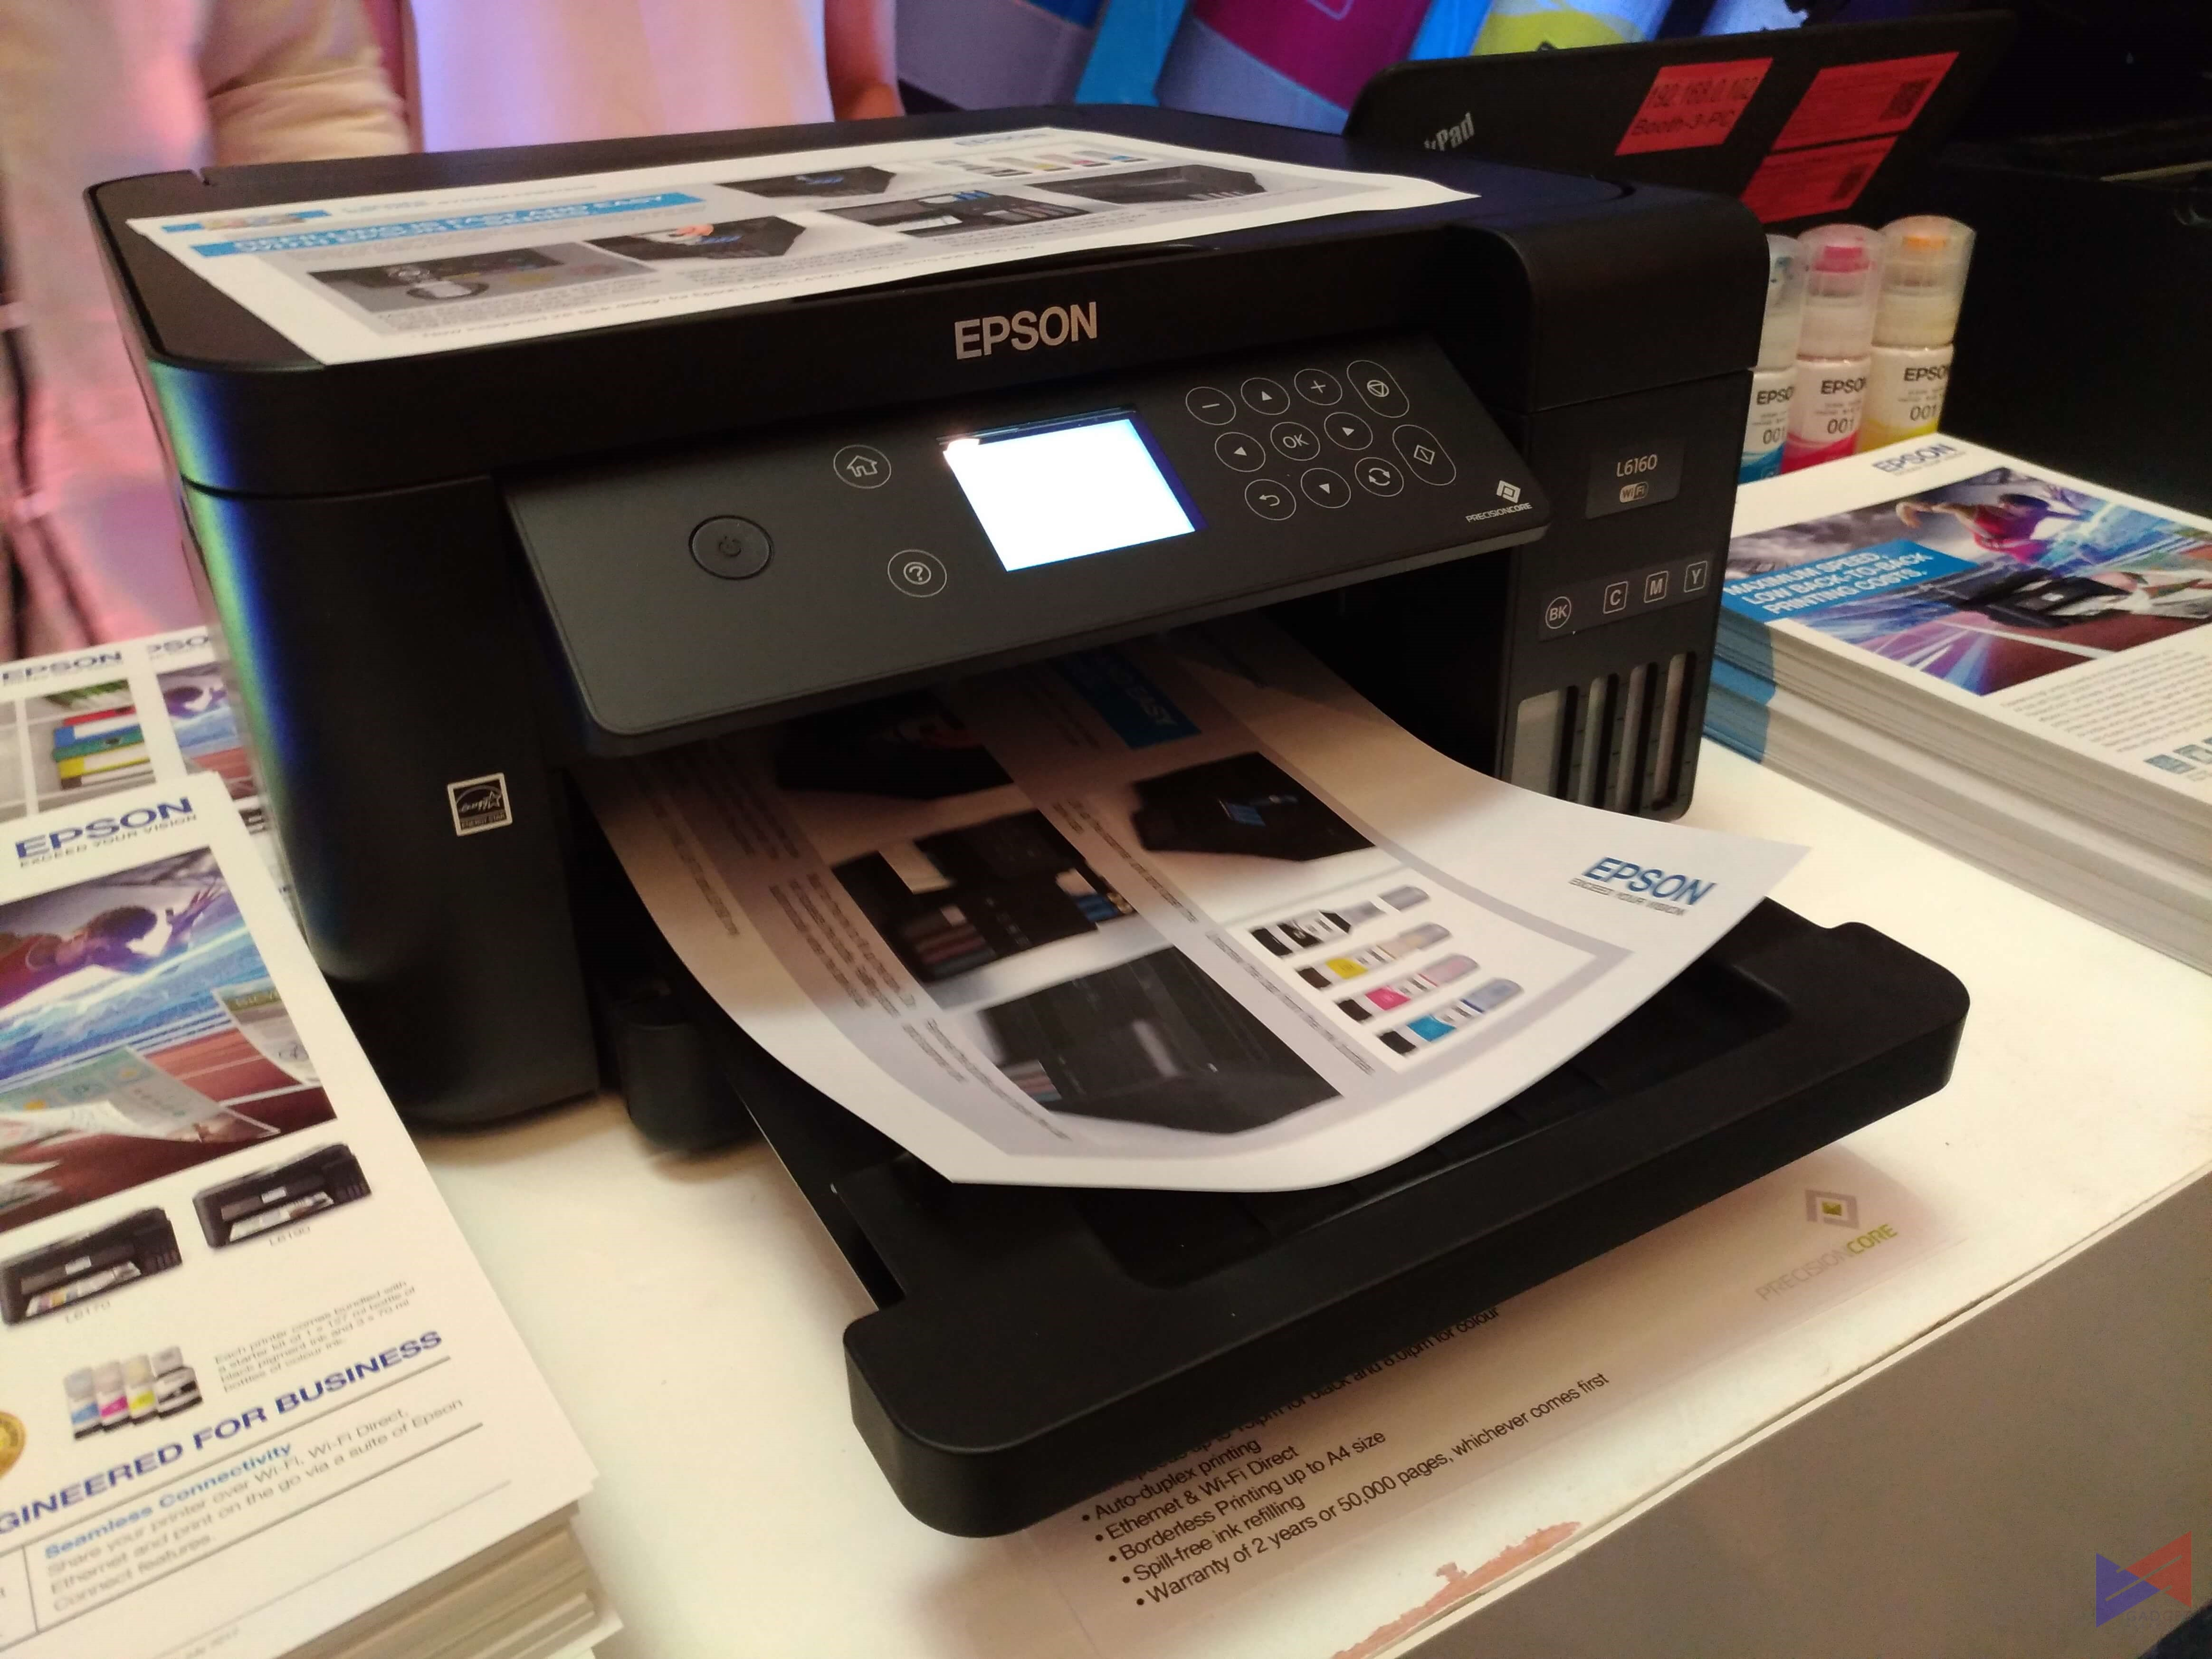 epson 6 - Epson Empowers Businesses Through Innovative Products